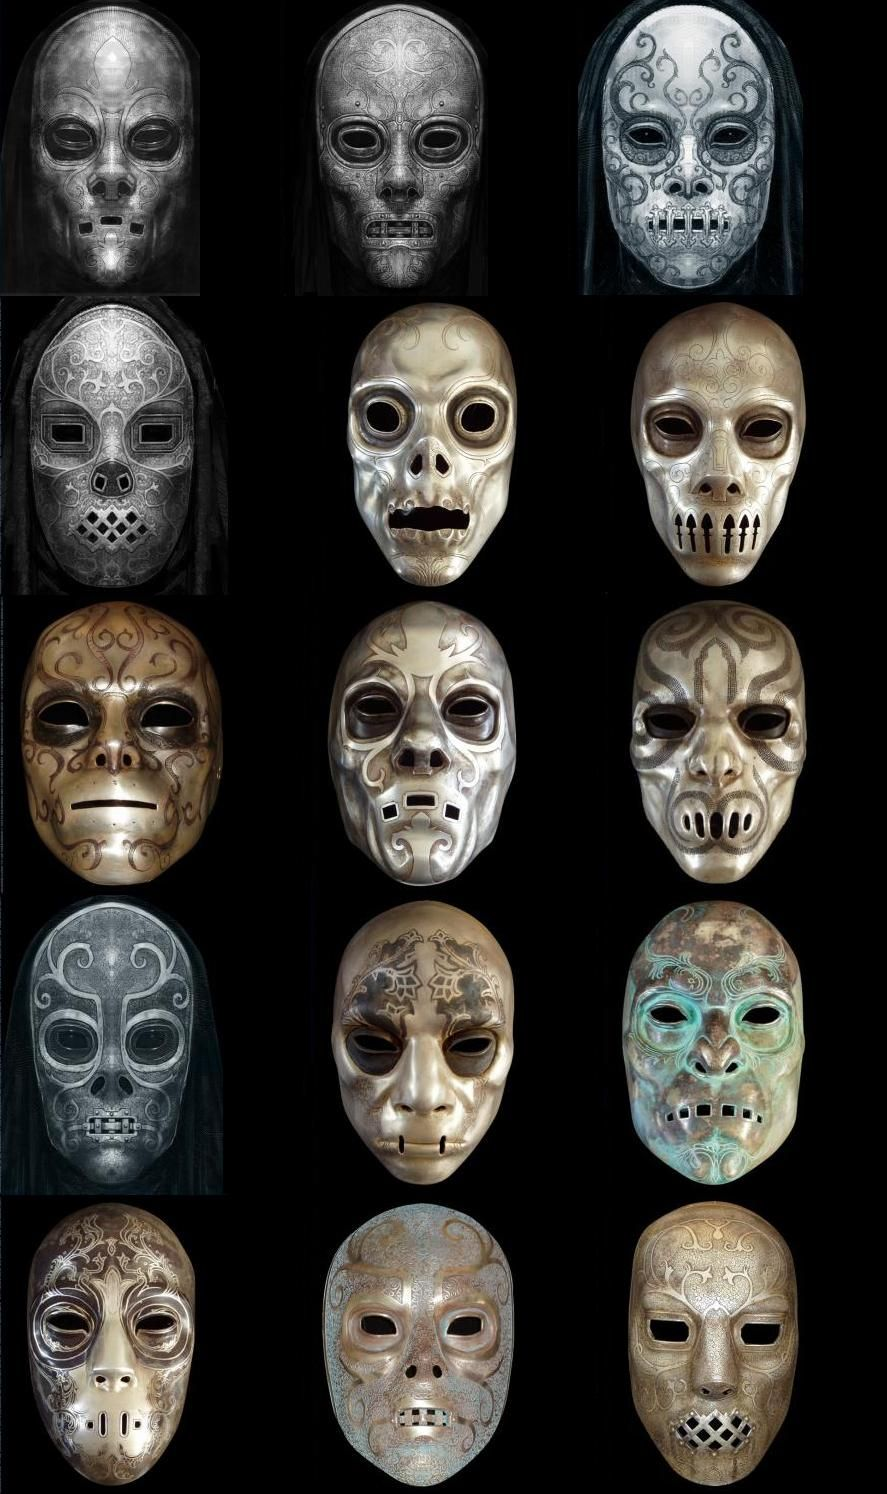 Death Eater Masks And Their Owners : death, eater, masks, their, owners, Things, Ideas, Activities, Kids,, Outdoor, Backyard, Games